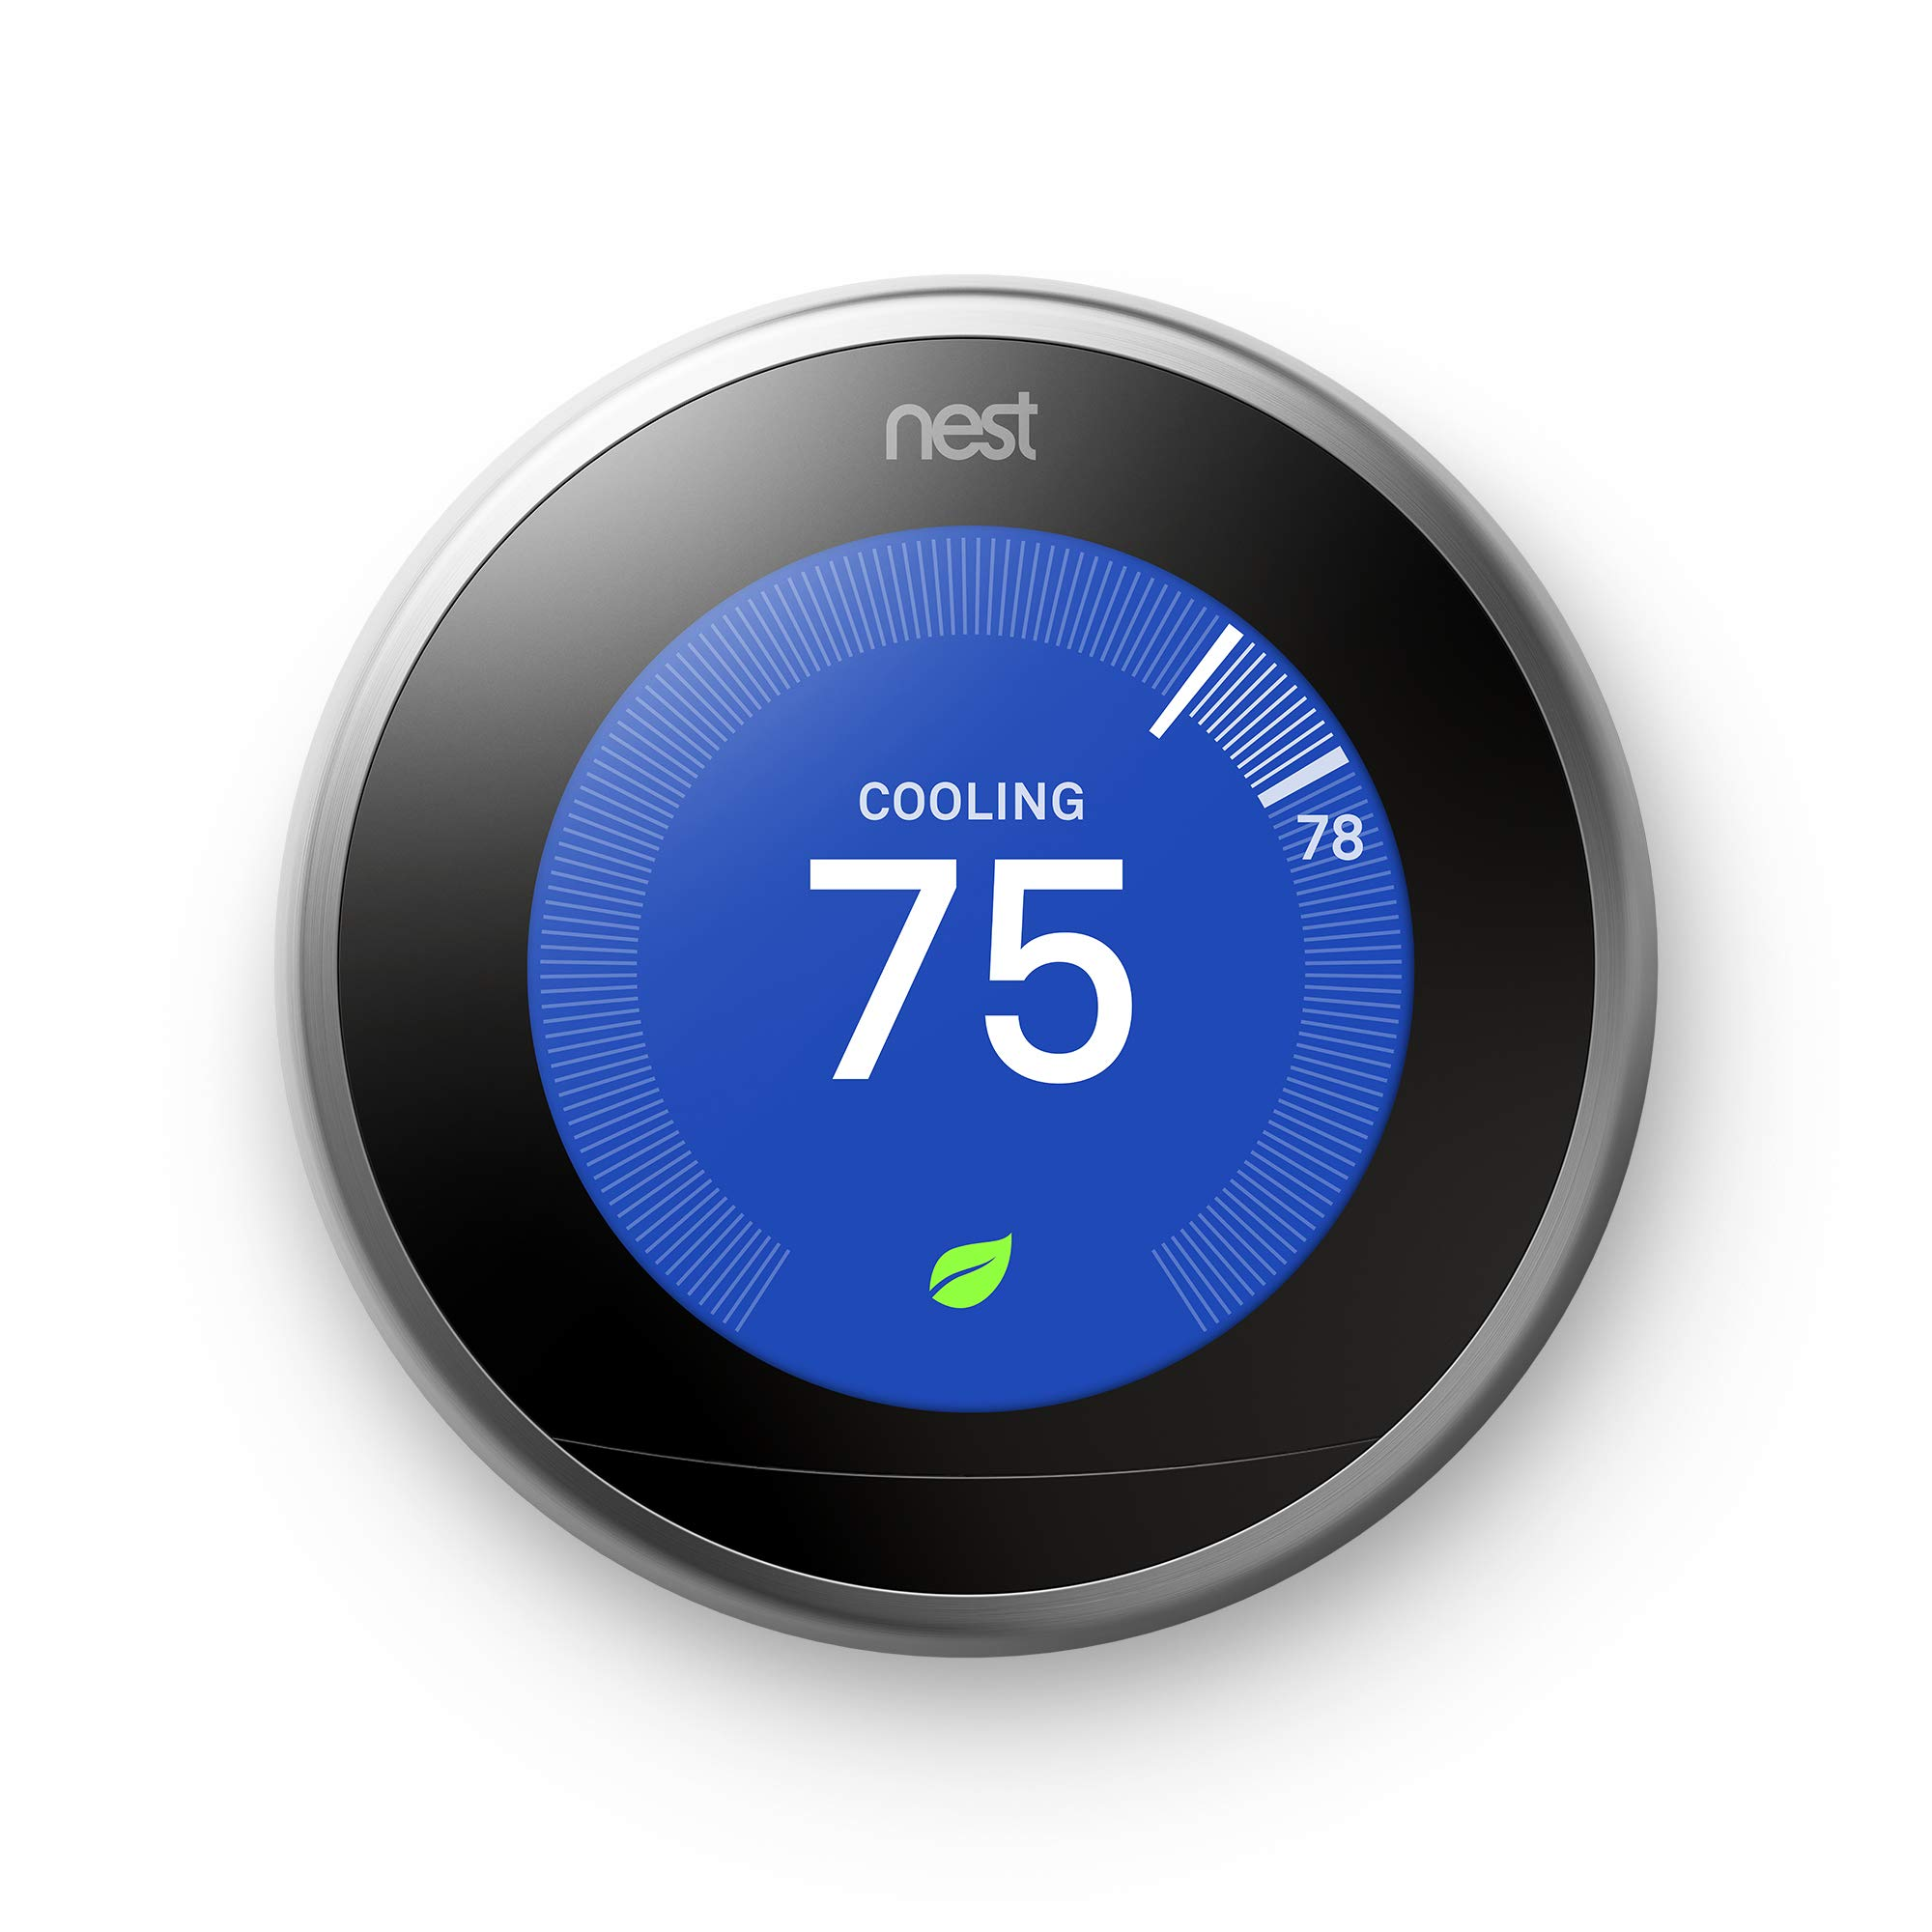 Google, T3007ES, Nest Learning Thermostat, 3rd Gen, Smart Thermostat, Stainless Steel, Works With Alexa by Nest